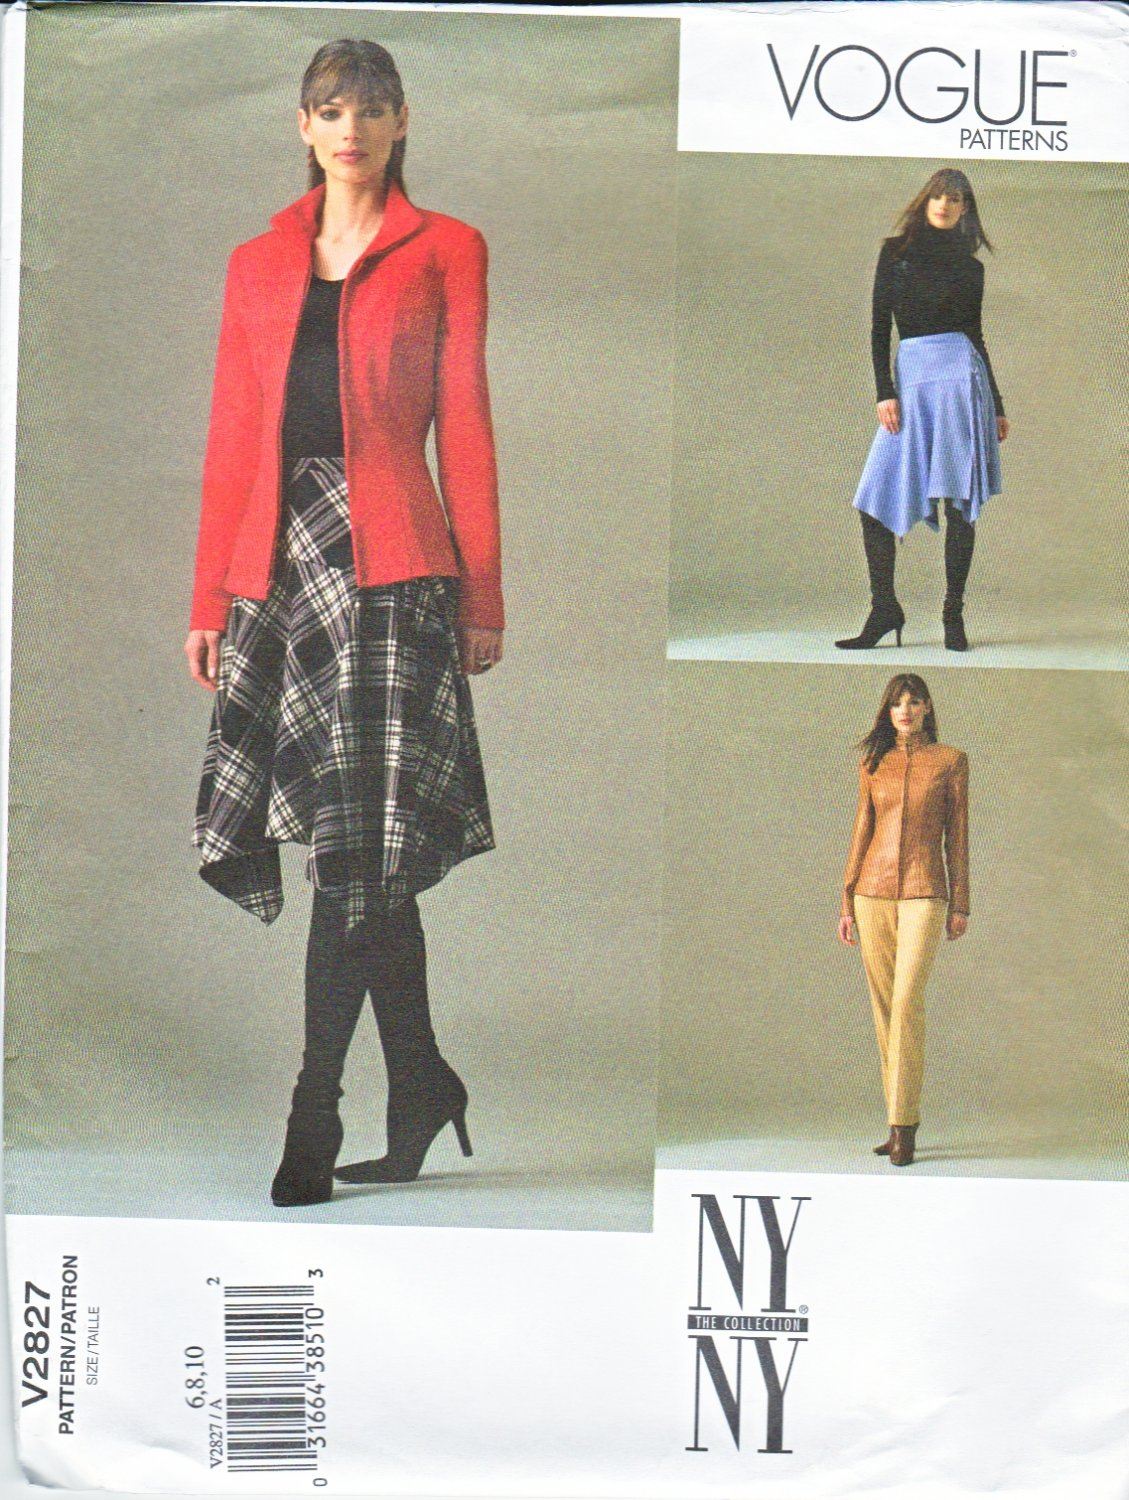 Vogue Sewing Pattern 2827 Misses Size 18-20-22 NY NY Jacket Wrap Skirt Pants